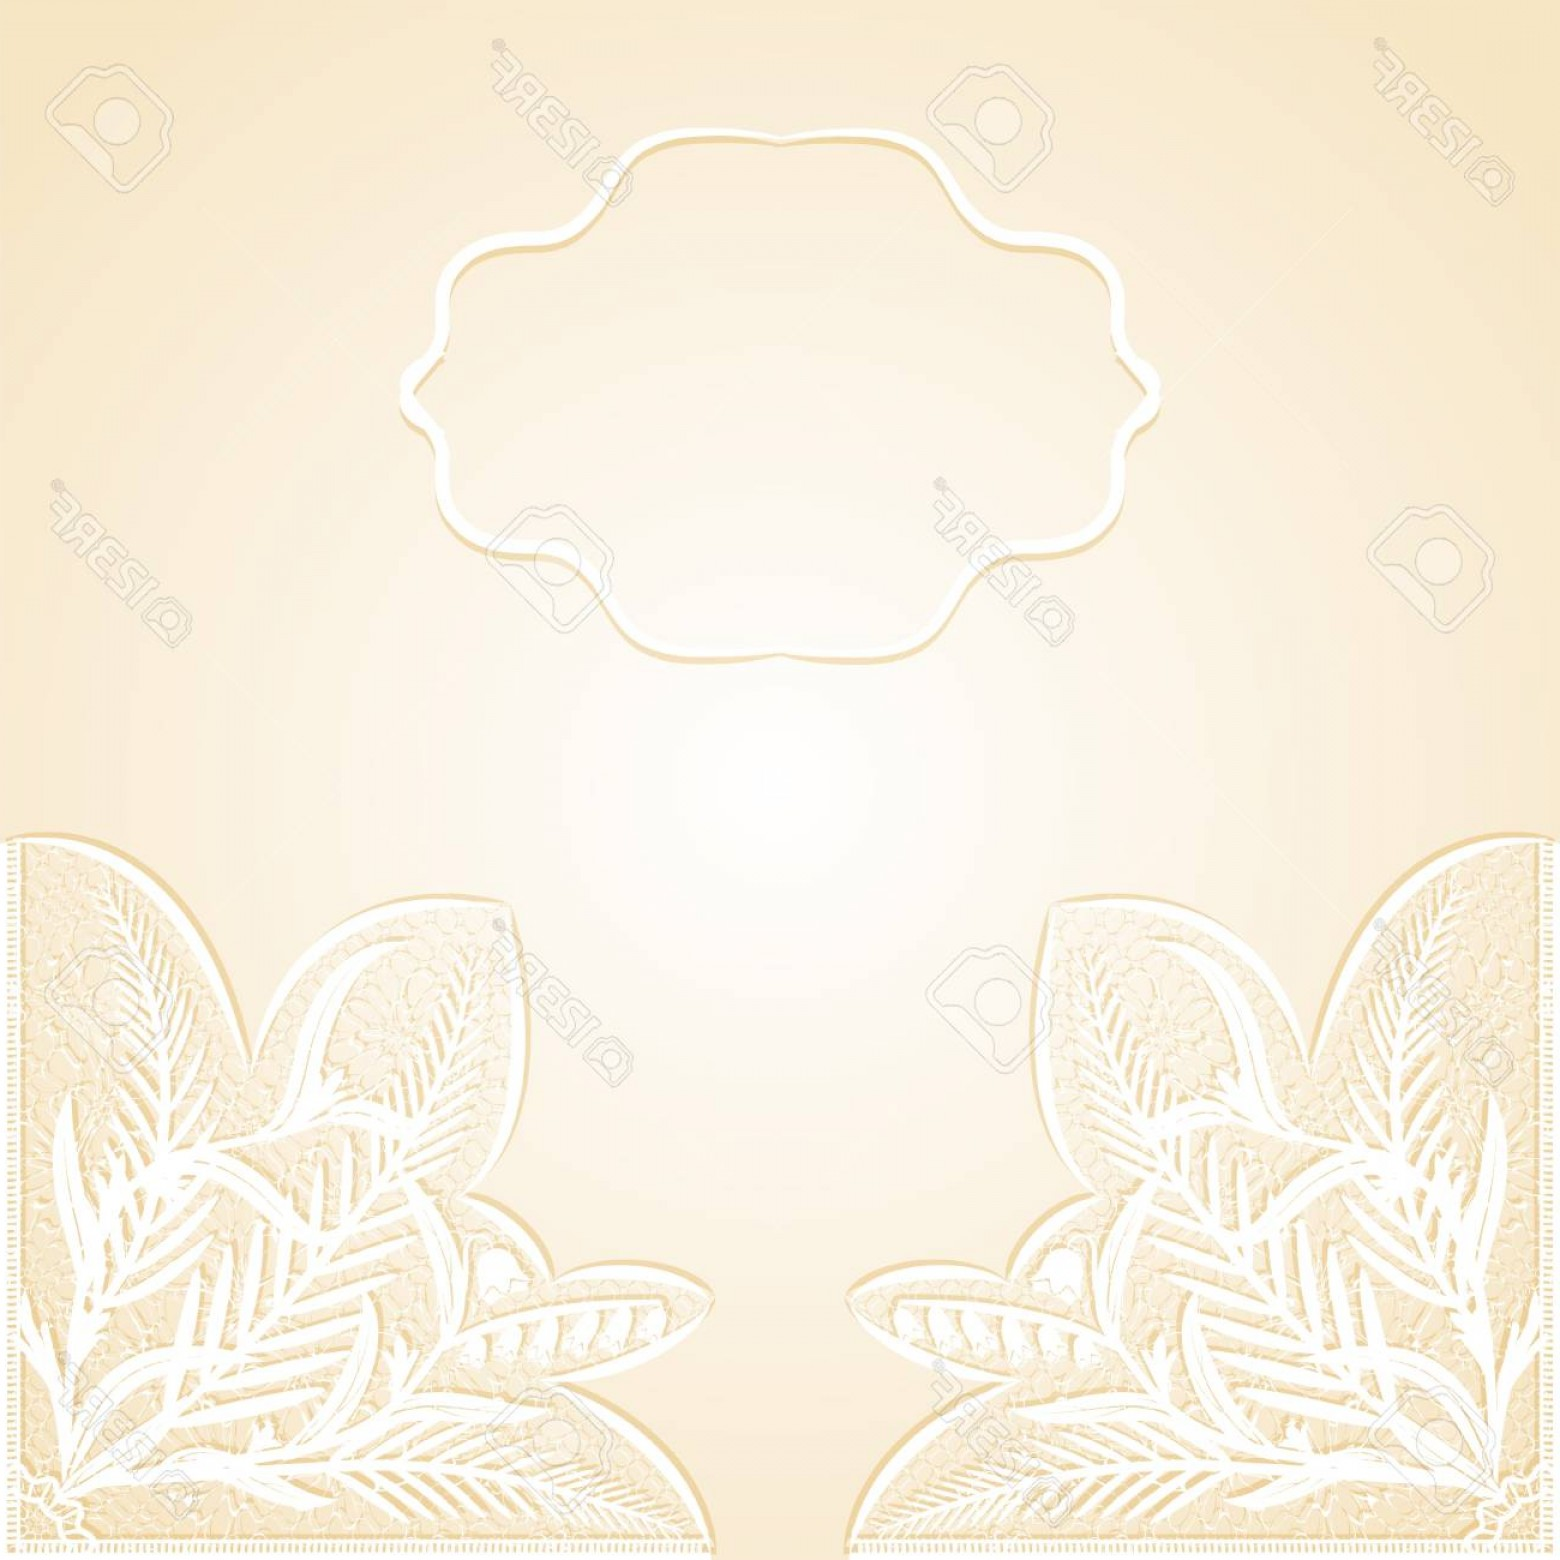 White Lace Vector: Photowedding Invitation With Delicate White Lace Vector Illustration